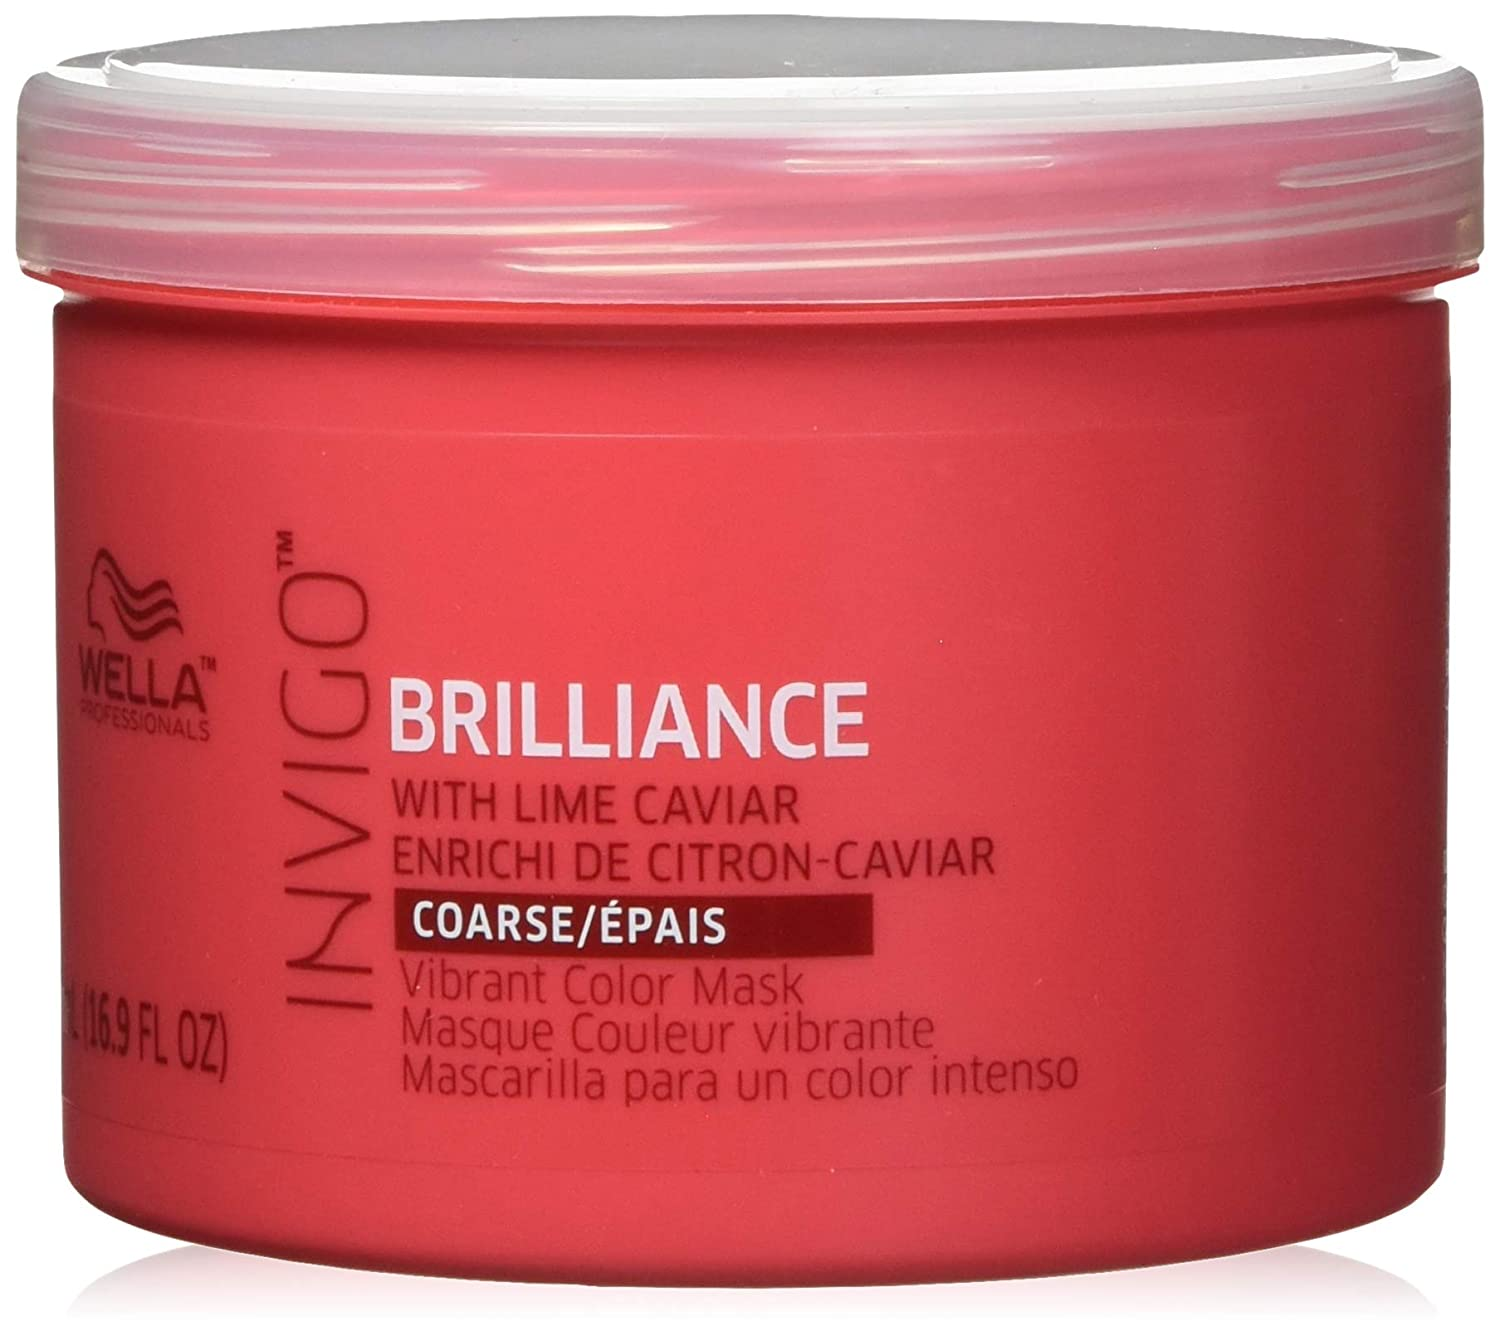 Wella, Invigo Brilliance Mask 16.9oz